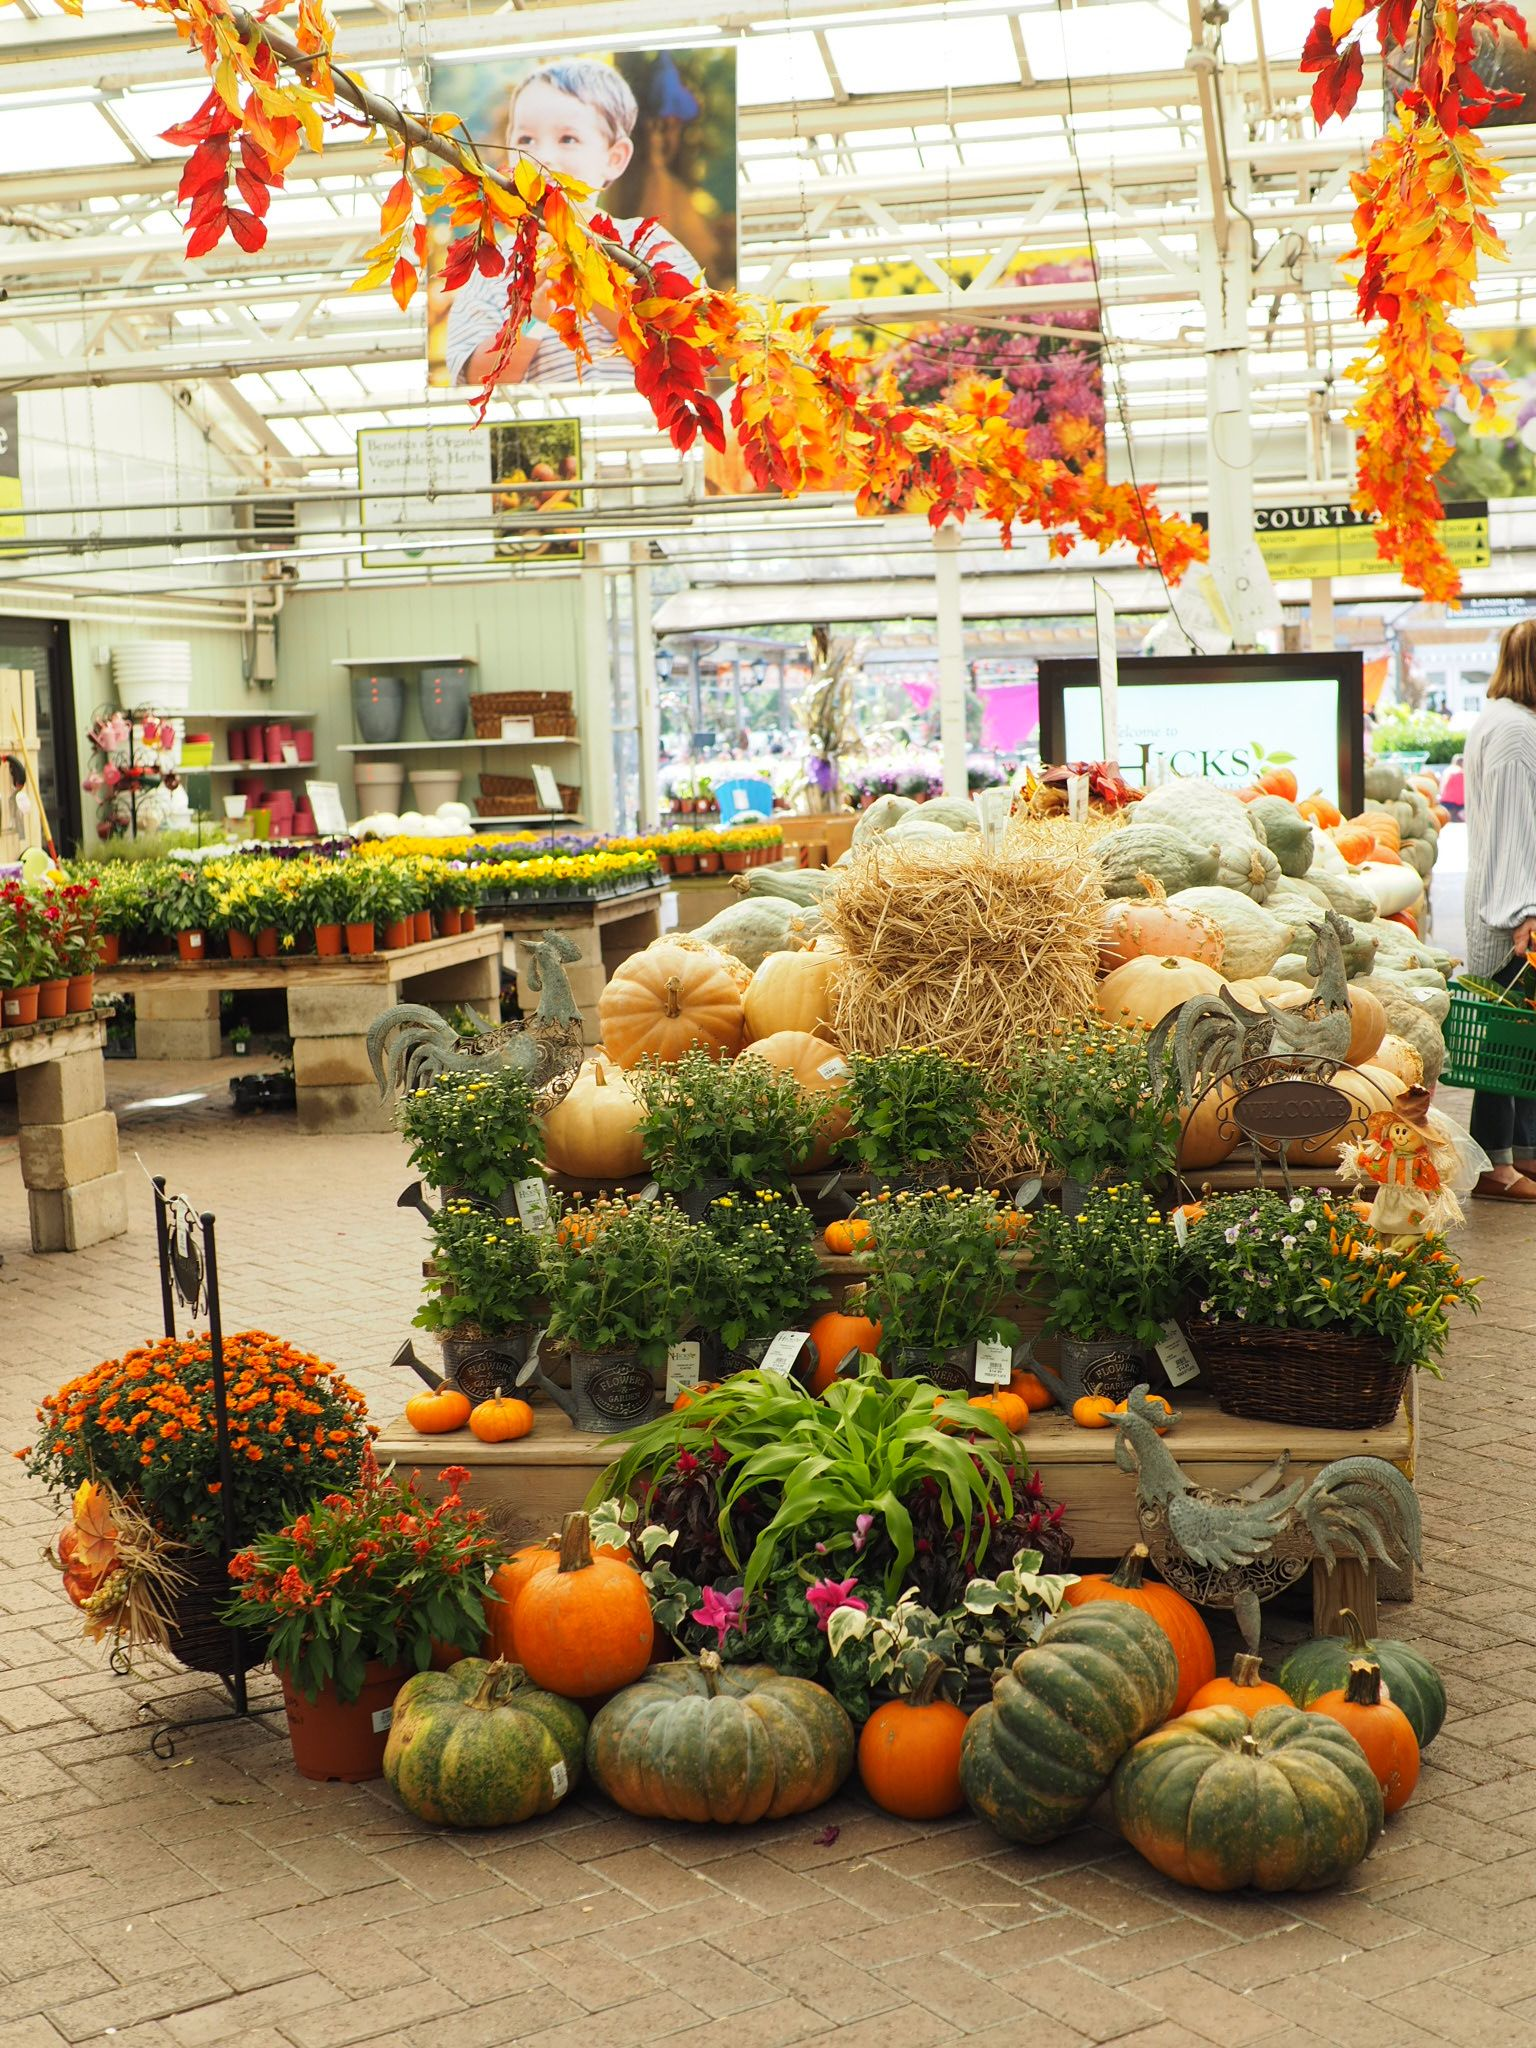 We Are The Largest Garden Center In New York Come Visit Us In